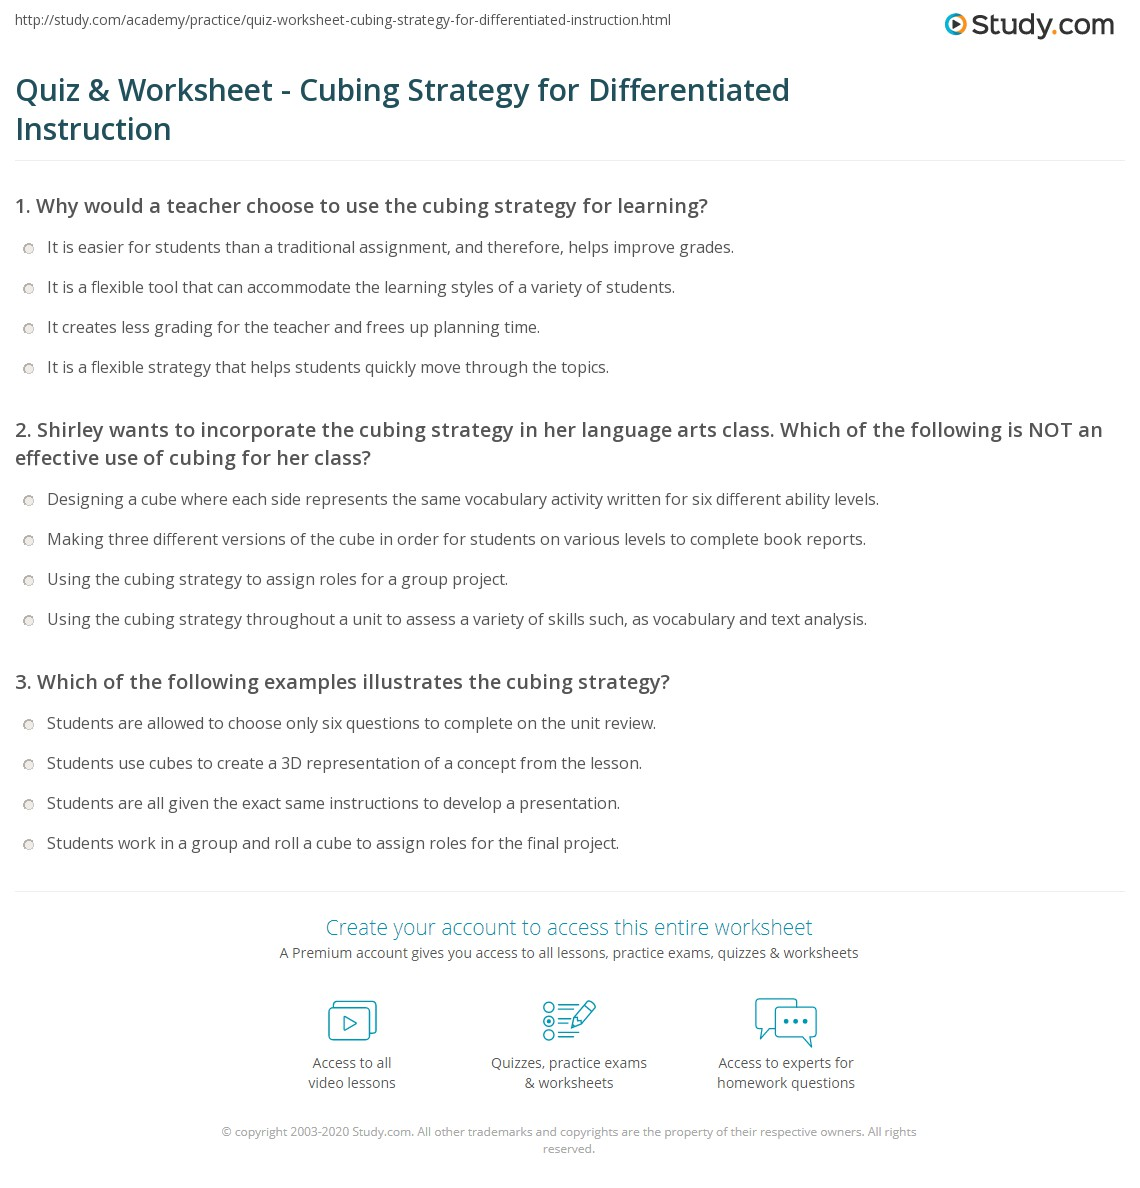 Quiz Worksheet Cubing Strategy For Differentiated Instruction